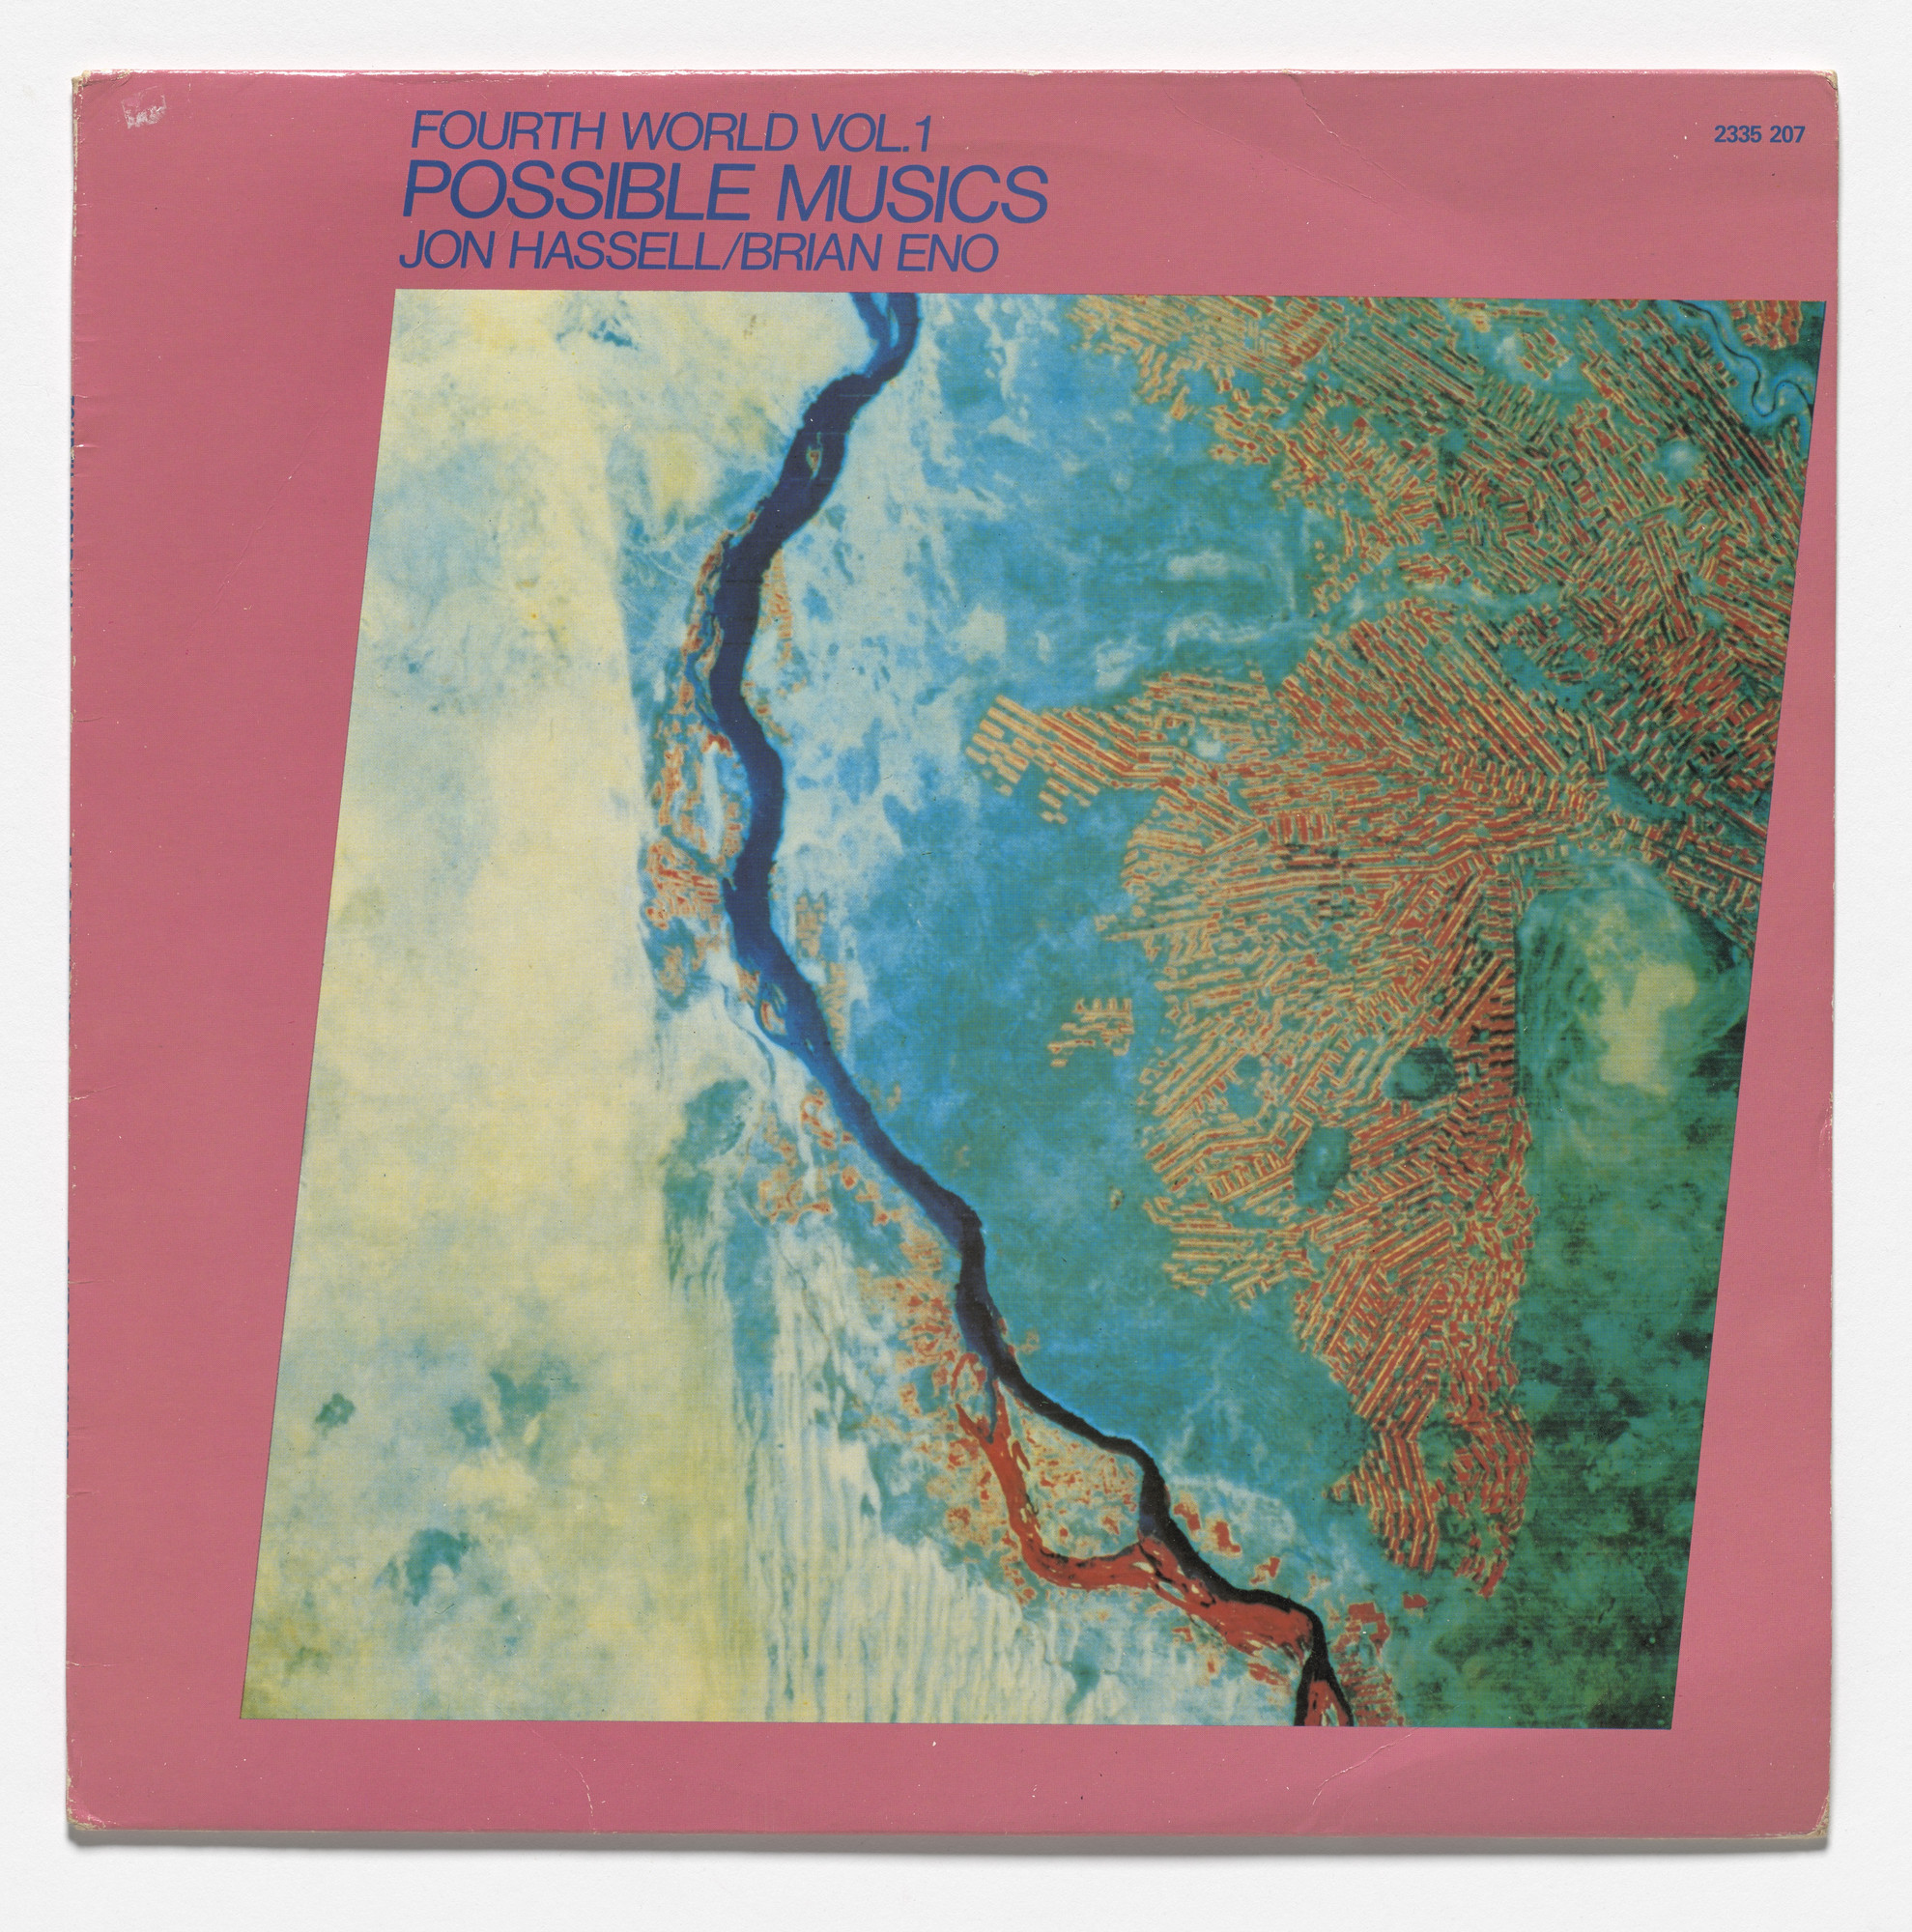 Brian Eno, Jon Hassell. Fourth World Vol 1 - Possible Musics. 1980